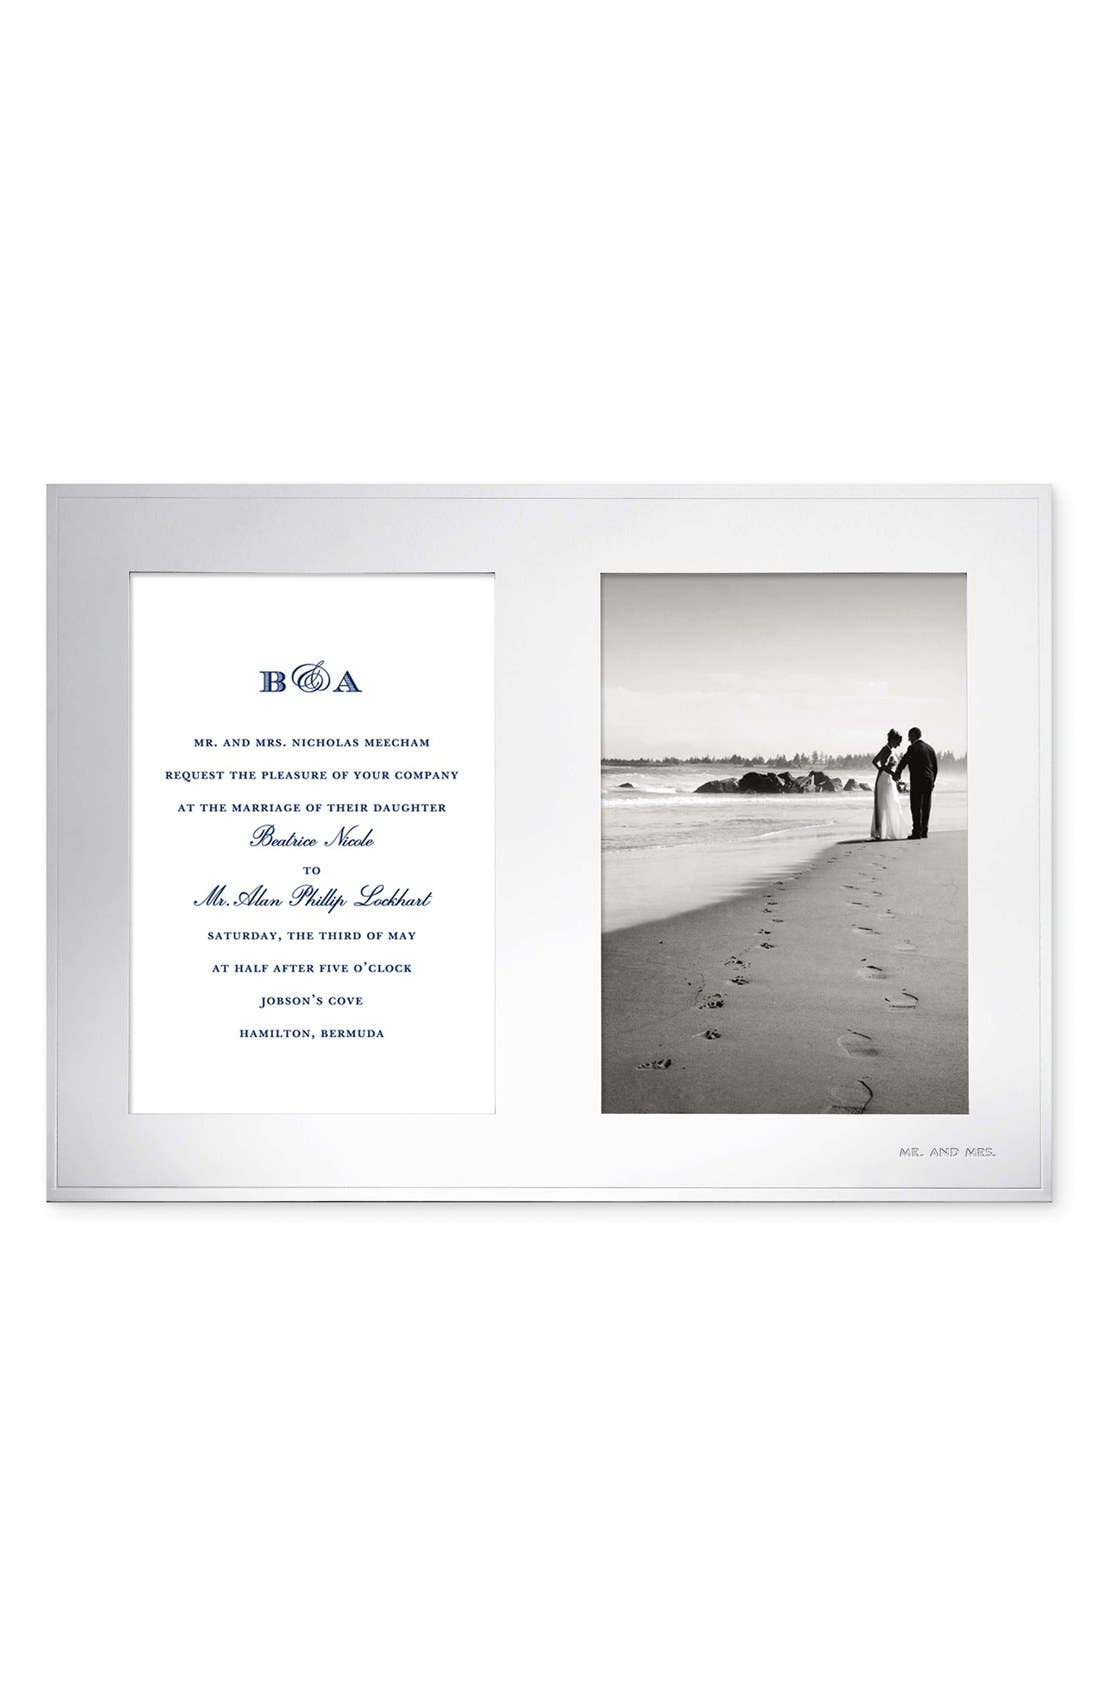 Alternate Image 1 Selected - kate spade new york 'darling point' double invitation frame